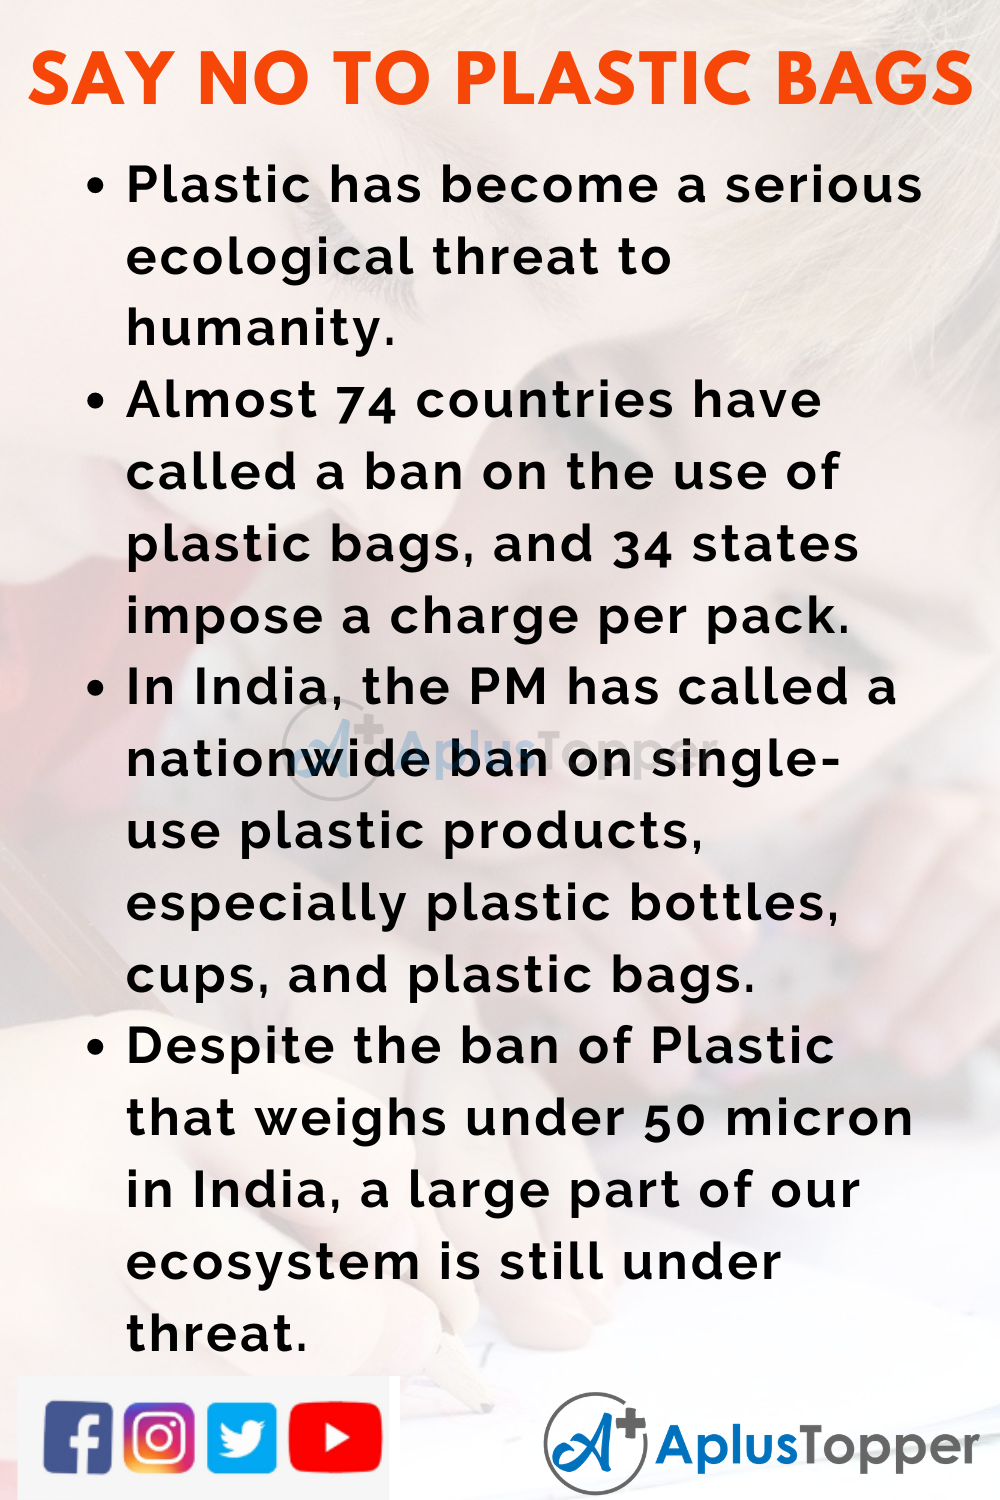 10 Lines about Say No to Plastic Bags